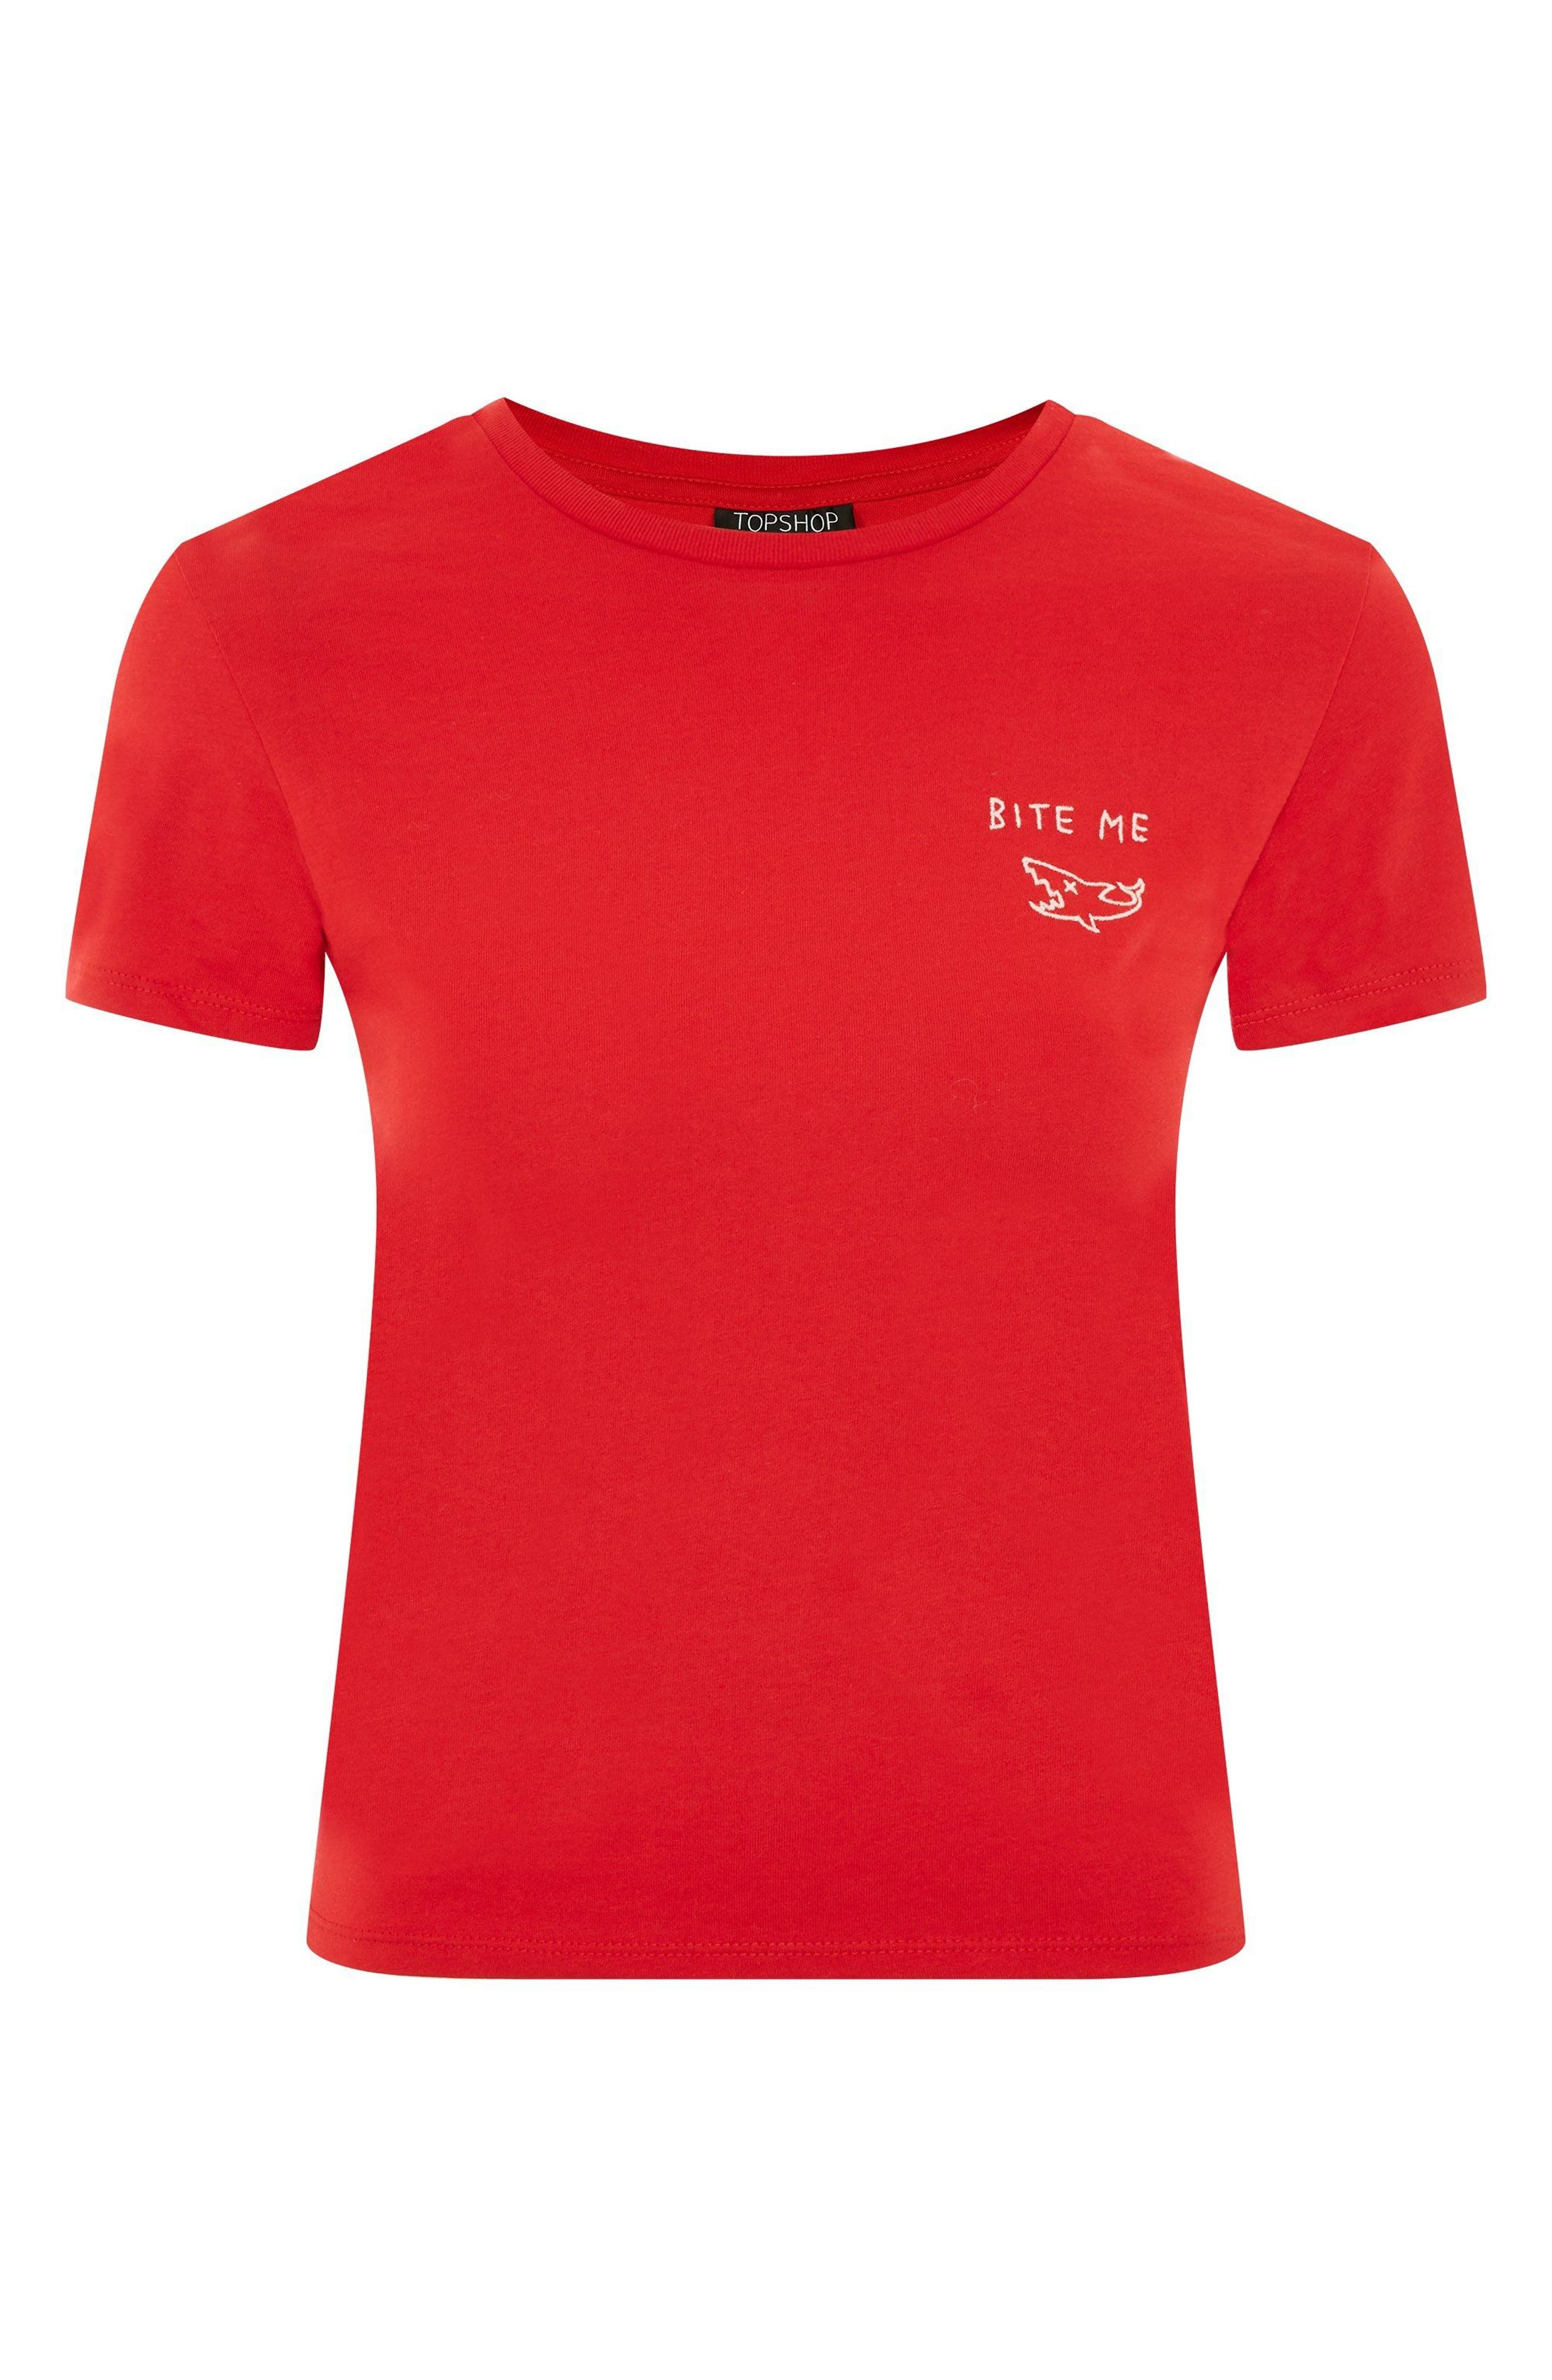 Bite Me Embroidered Tee,                             Alternate thumbnail 3, color,                             600